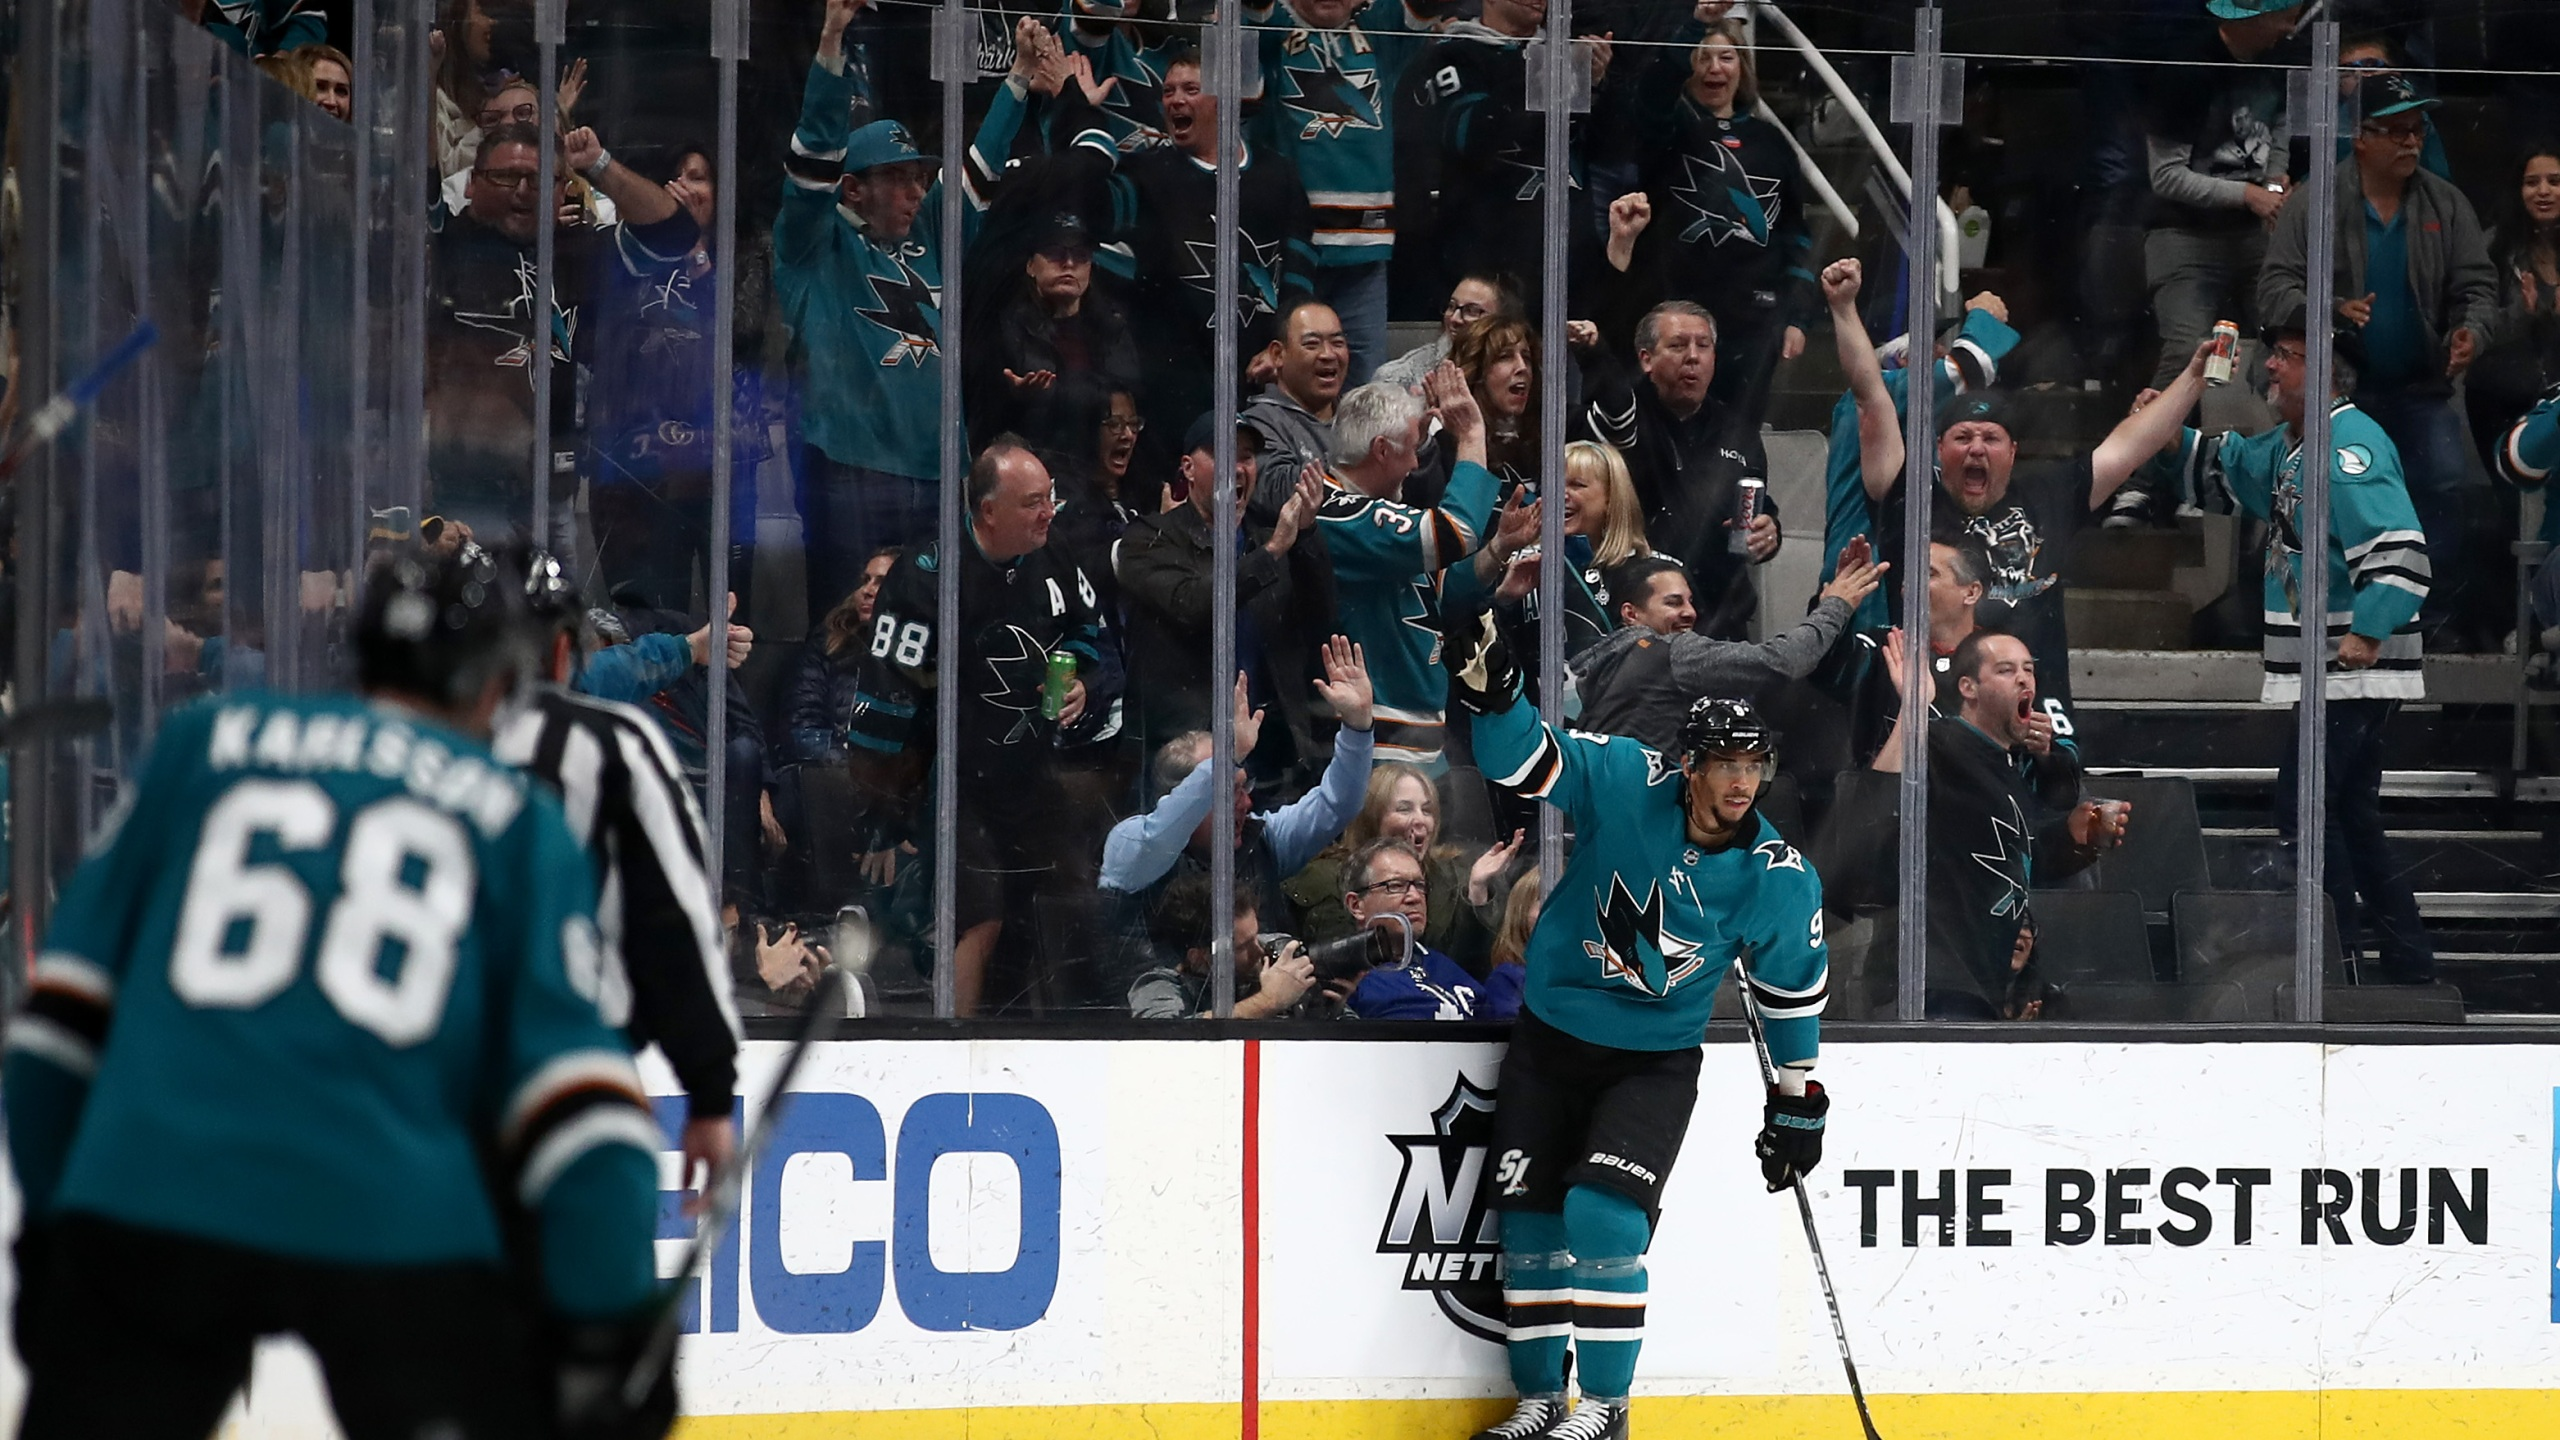 Evander Kane of the San Jose Sharks celebrates after scorinh a goal against the Toronto Maple Leafs in San Jose on March 3, 2020. (Credit: Ezra Shaw / Getty Images)